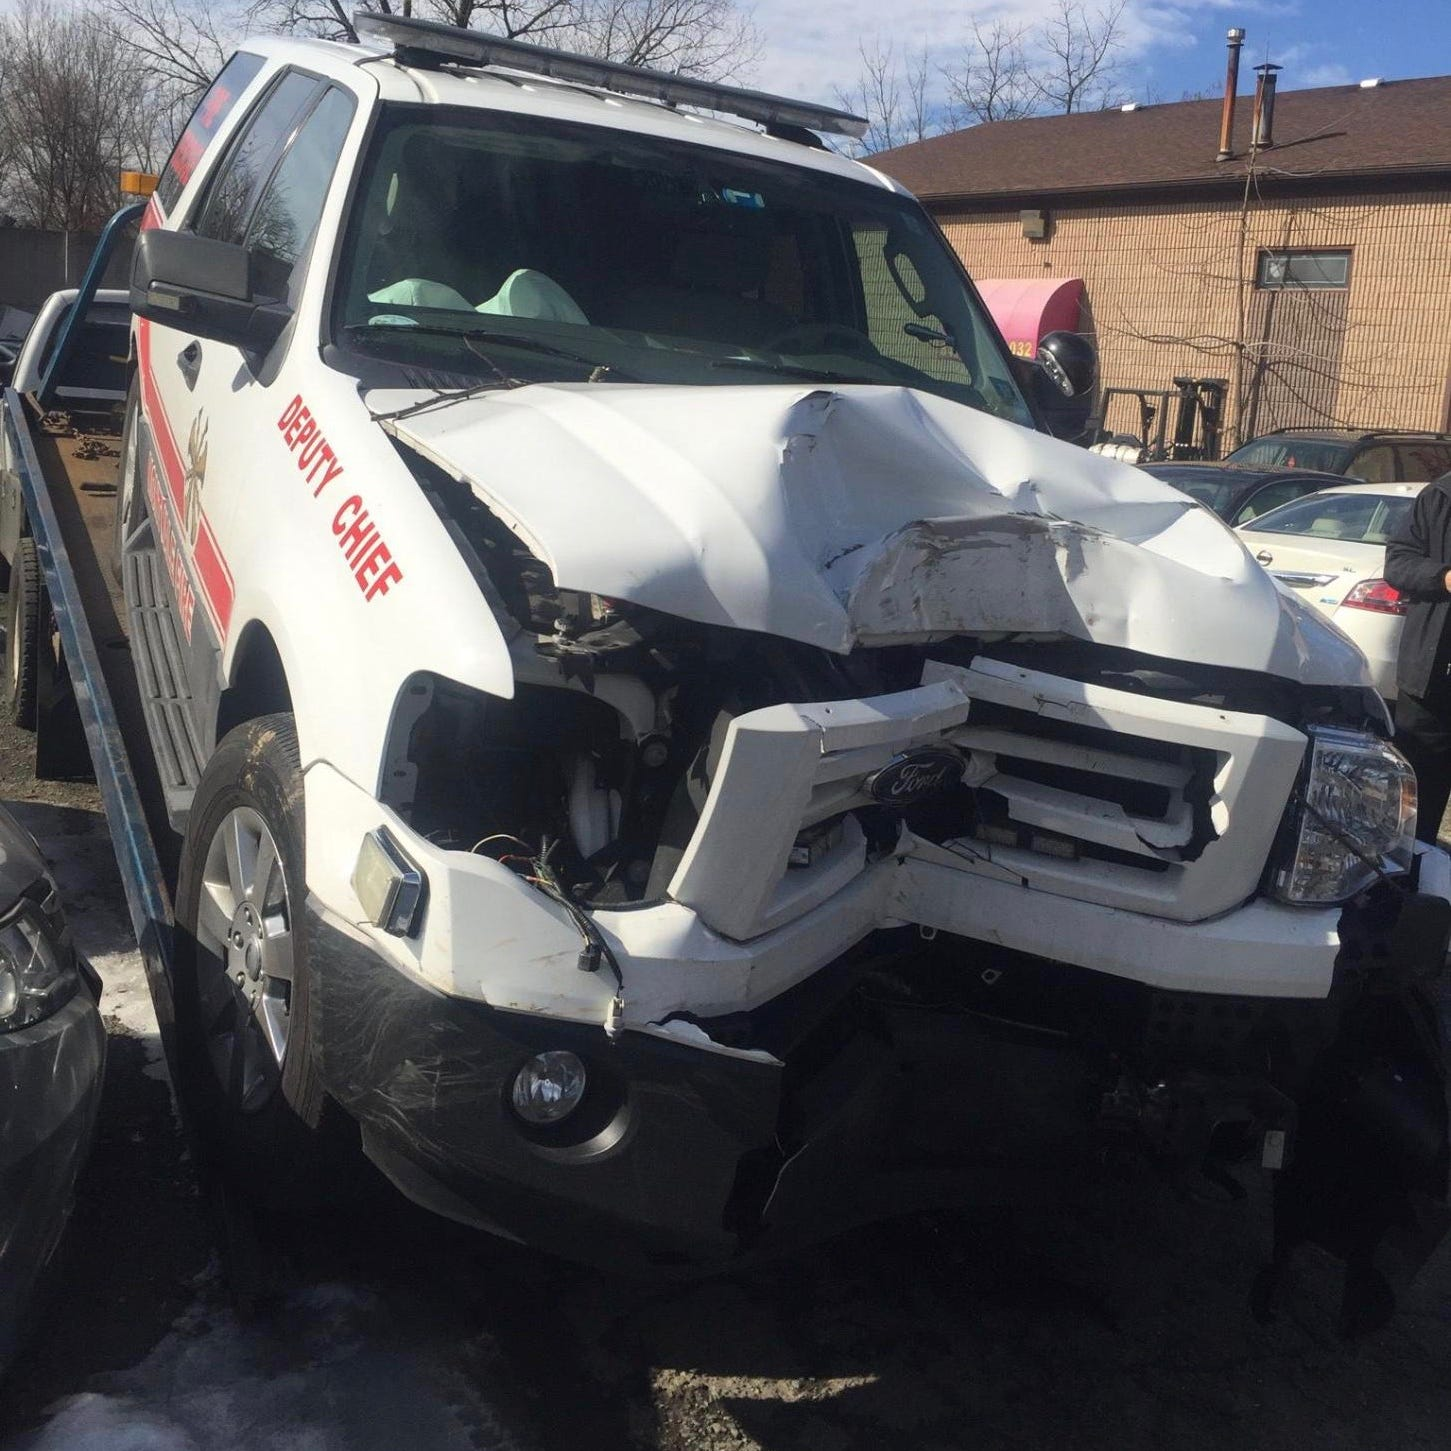 Montvale deputy fire chief drunkenly crashed department SUV into tree, police say